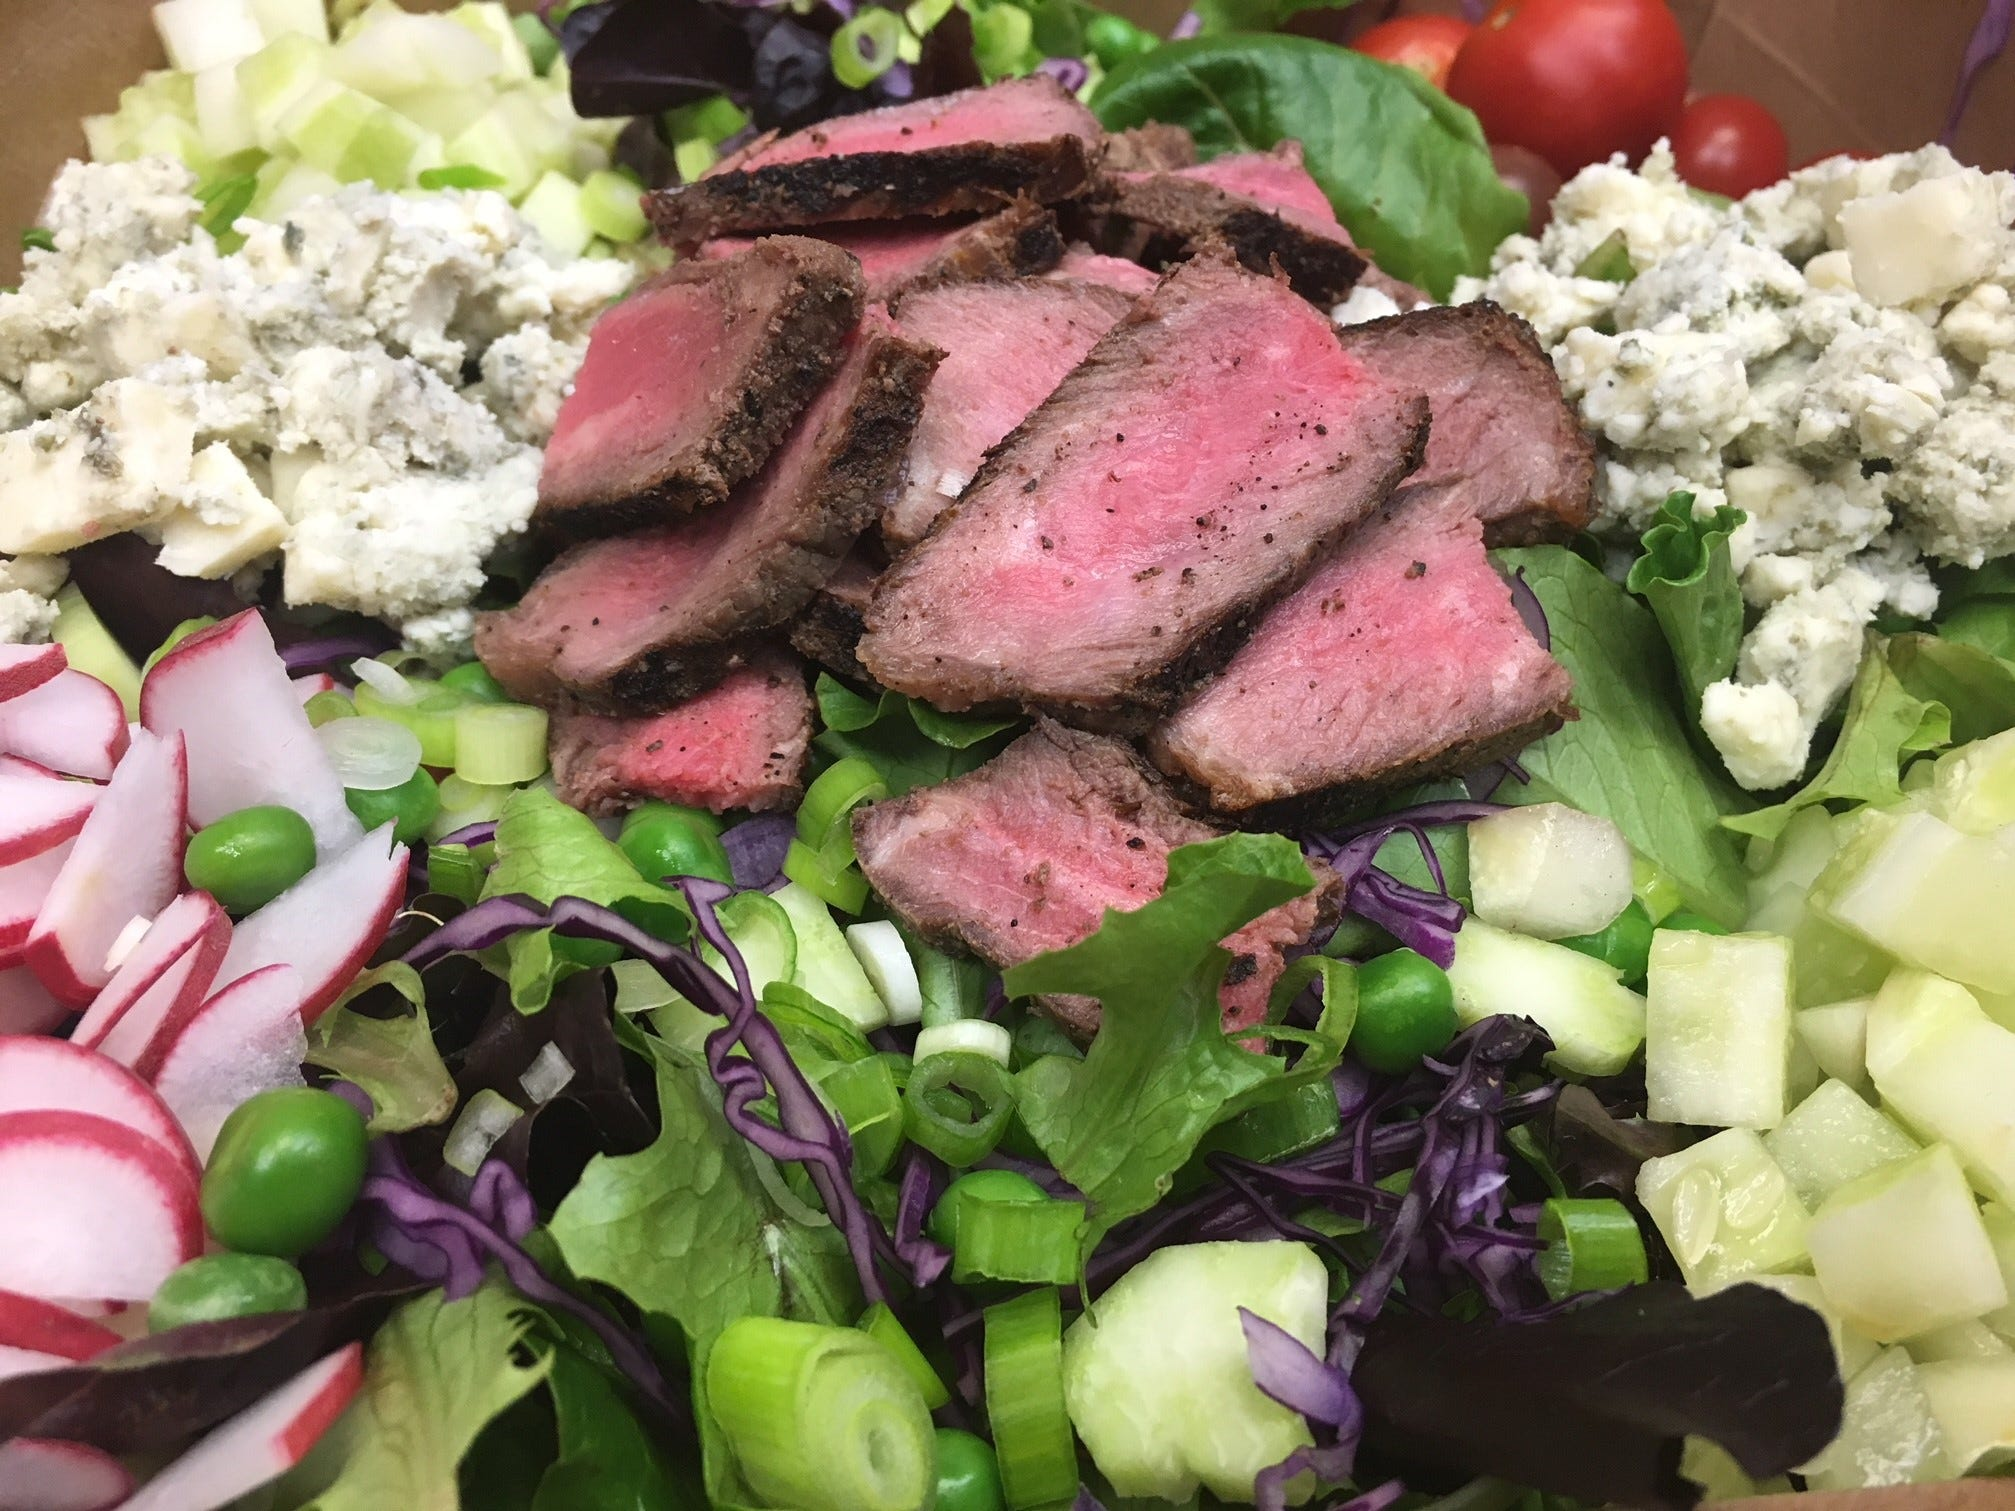 Steak salad made with local grass-fed beef and veggies.